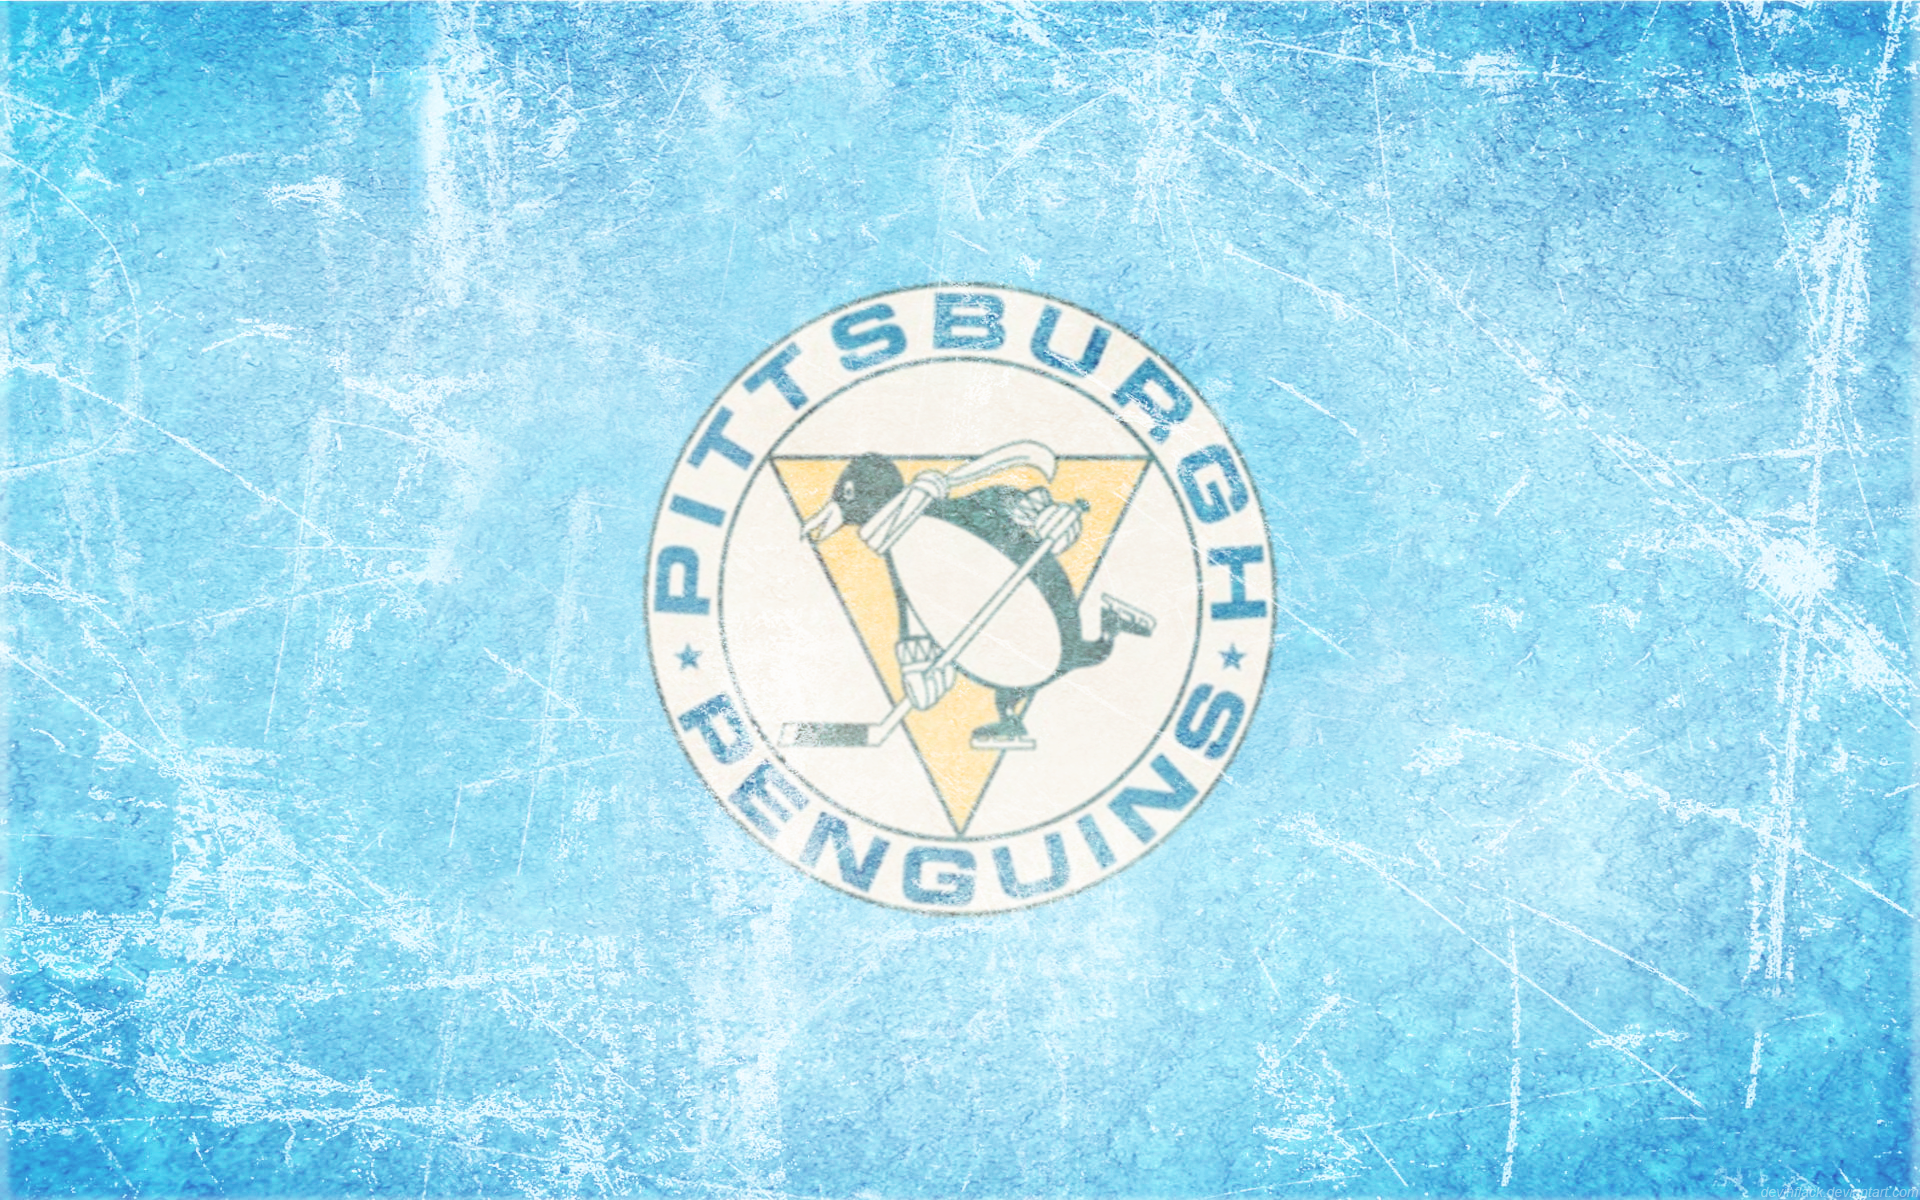 Pittsburgh Penguins Wallpaper in HQ Resolution